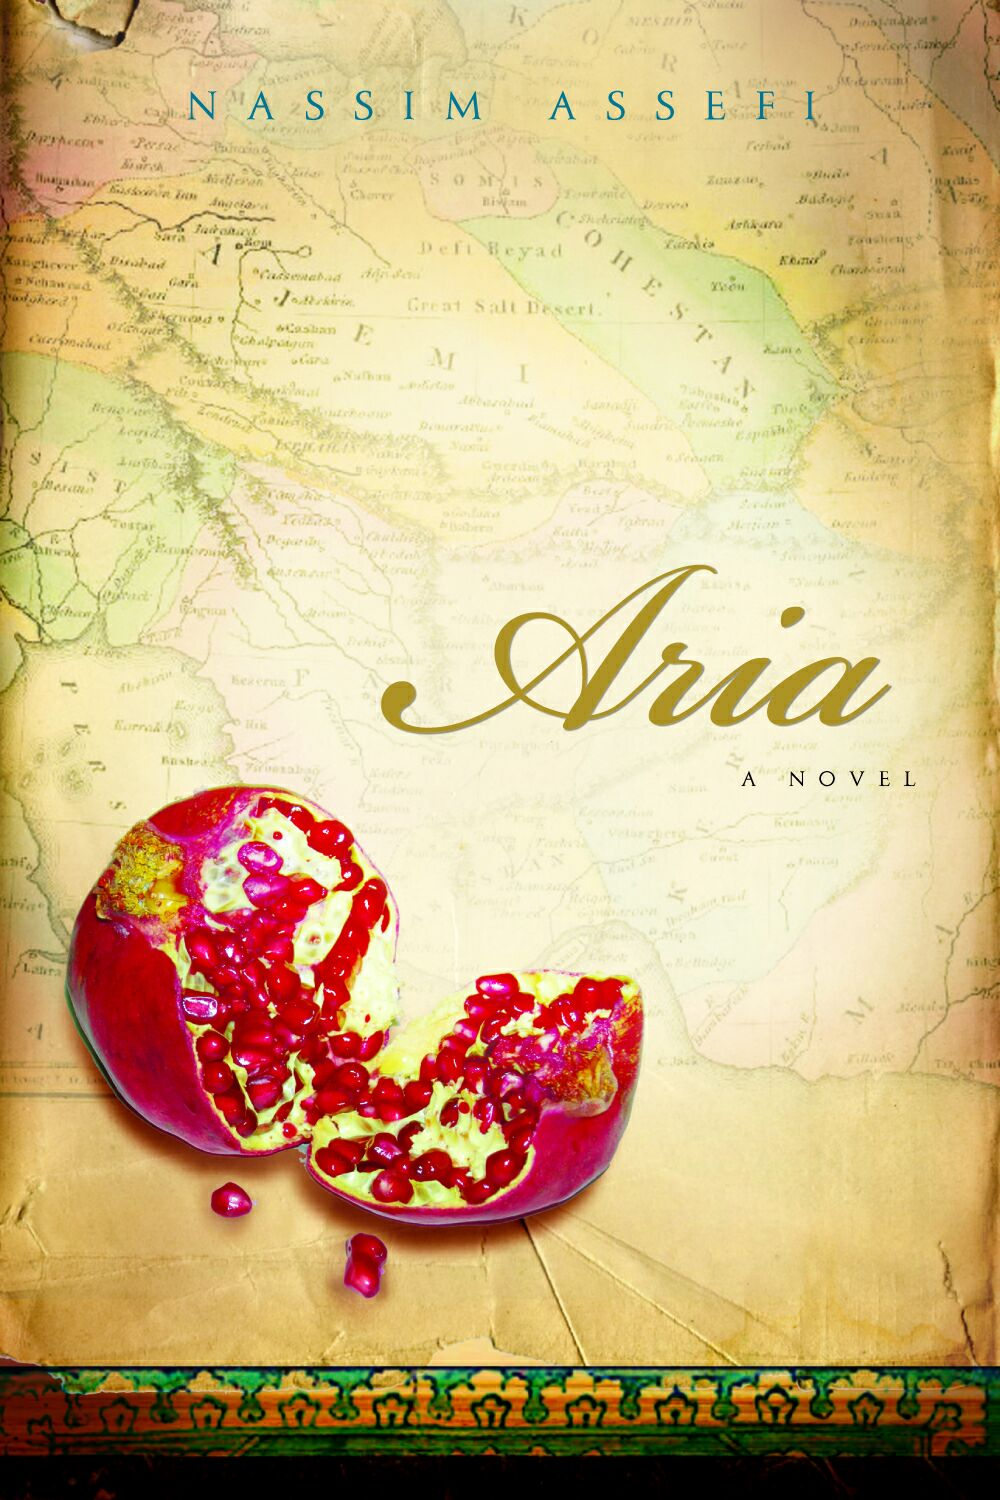 Nassim's 1st Novel, Aria - Aria was published by Harcourt in 2007 and 5 Foreign Presses (in Dutch, Persian, Portuguese, Slovene, and Taiwanese). It is currently out of print, but available digitally, on Amazon, and in libraries. Audiobook is available via Audible and ITunes.Click here for a reader's guide with discussion questions and answers.Click here for references related to themes in Aria (grief, death of a child and spouse, dwarfs, epistolary prose, mother-daughter relations, Tibet, Iran).